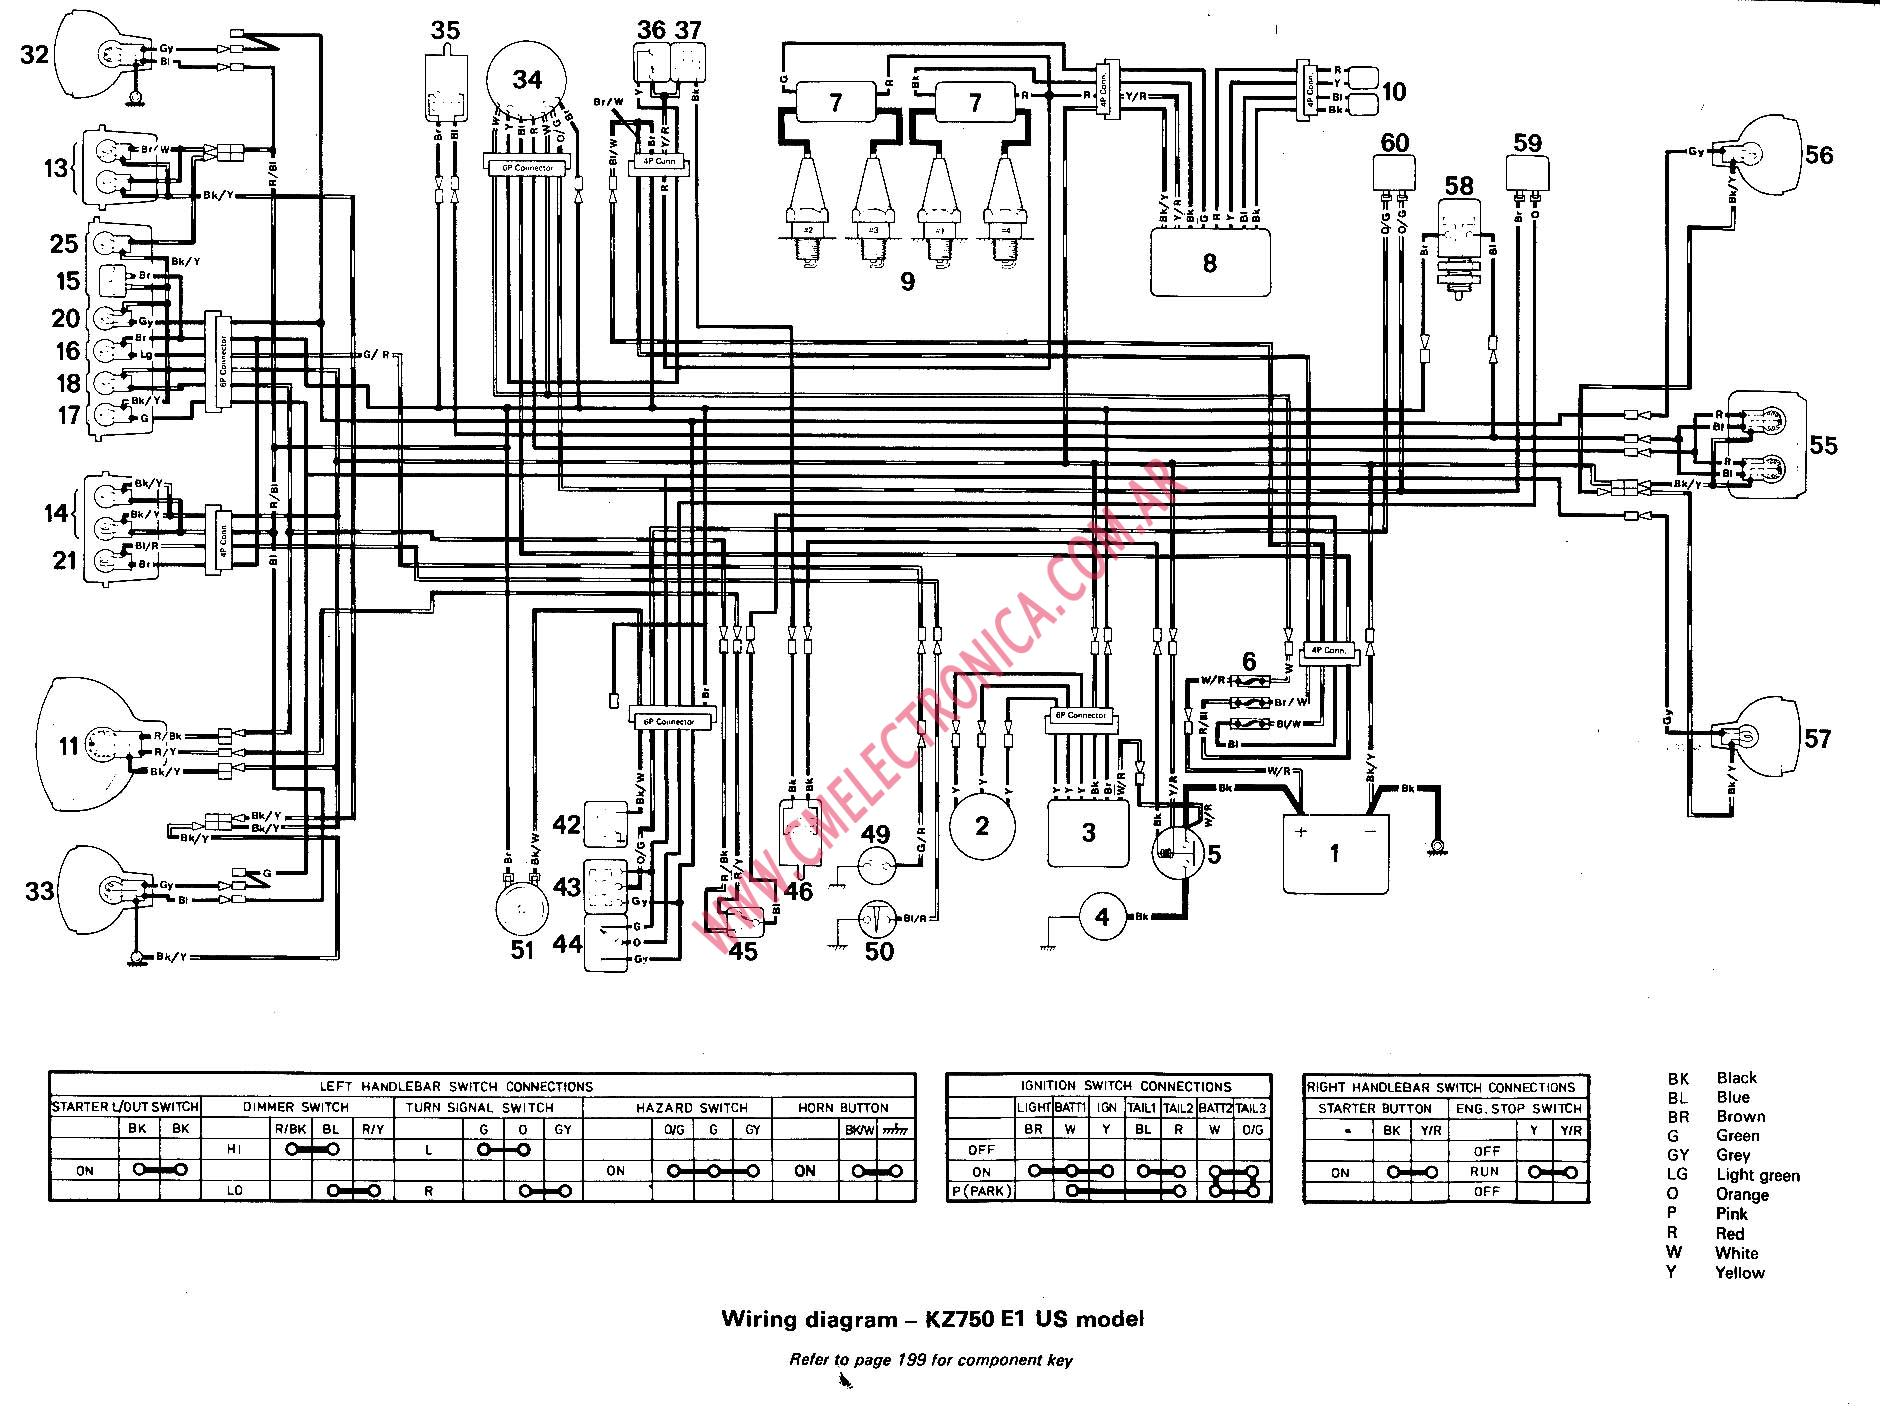 Wiring Diagram Kz750 Ltd Library Klr 650 New Holland Diagrams 1976 Kz750b Electrical Internet Of Things Rh Banyan Palace Com 76 Trans Am